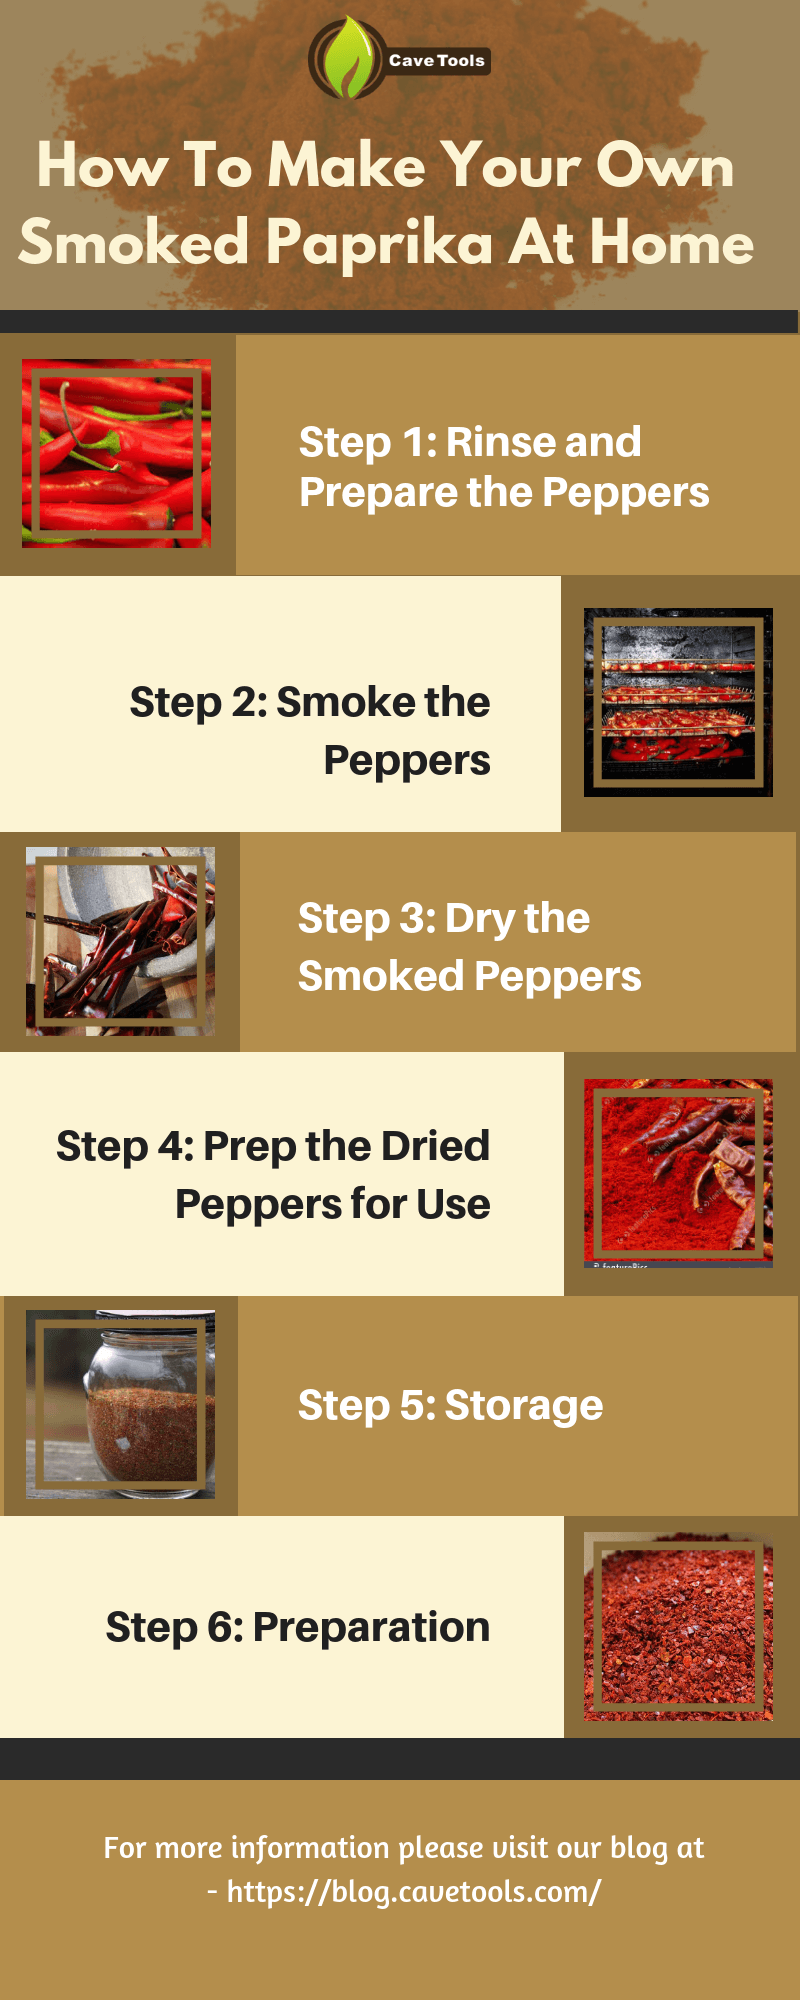 how to make smoked paprika